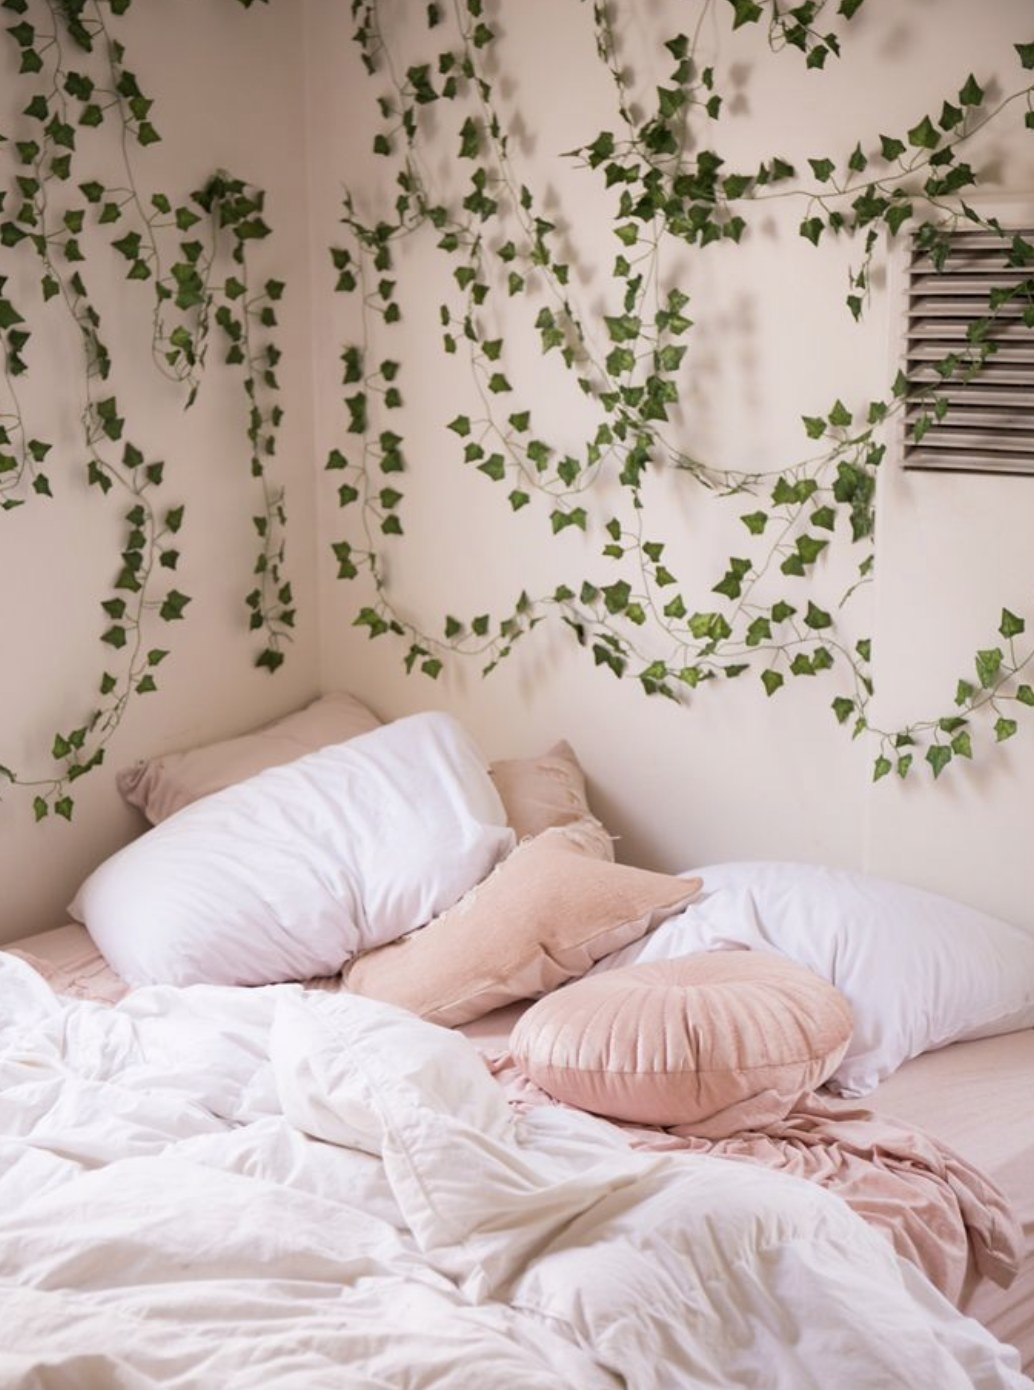 A bedroom with green decorative vines on the wall